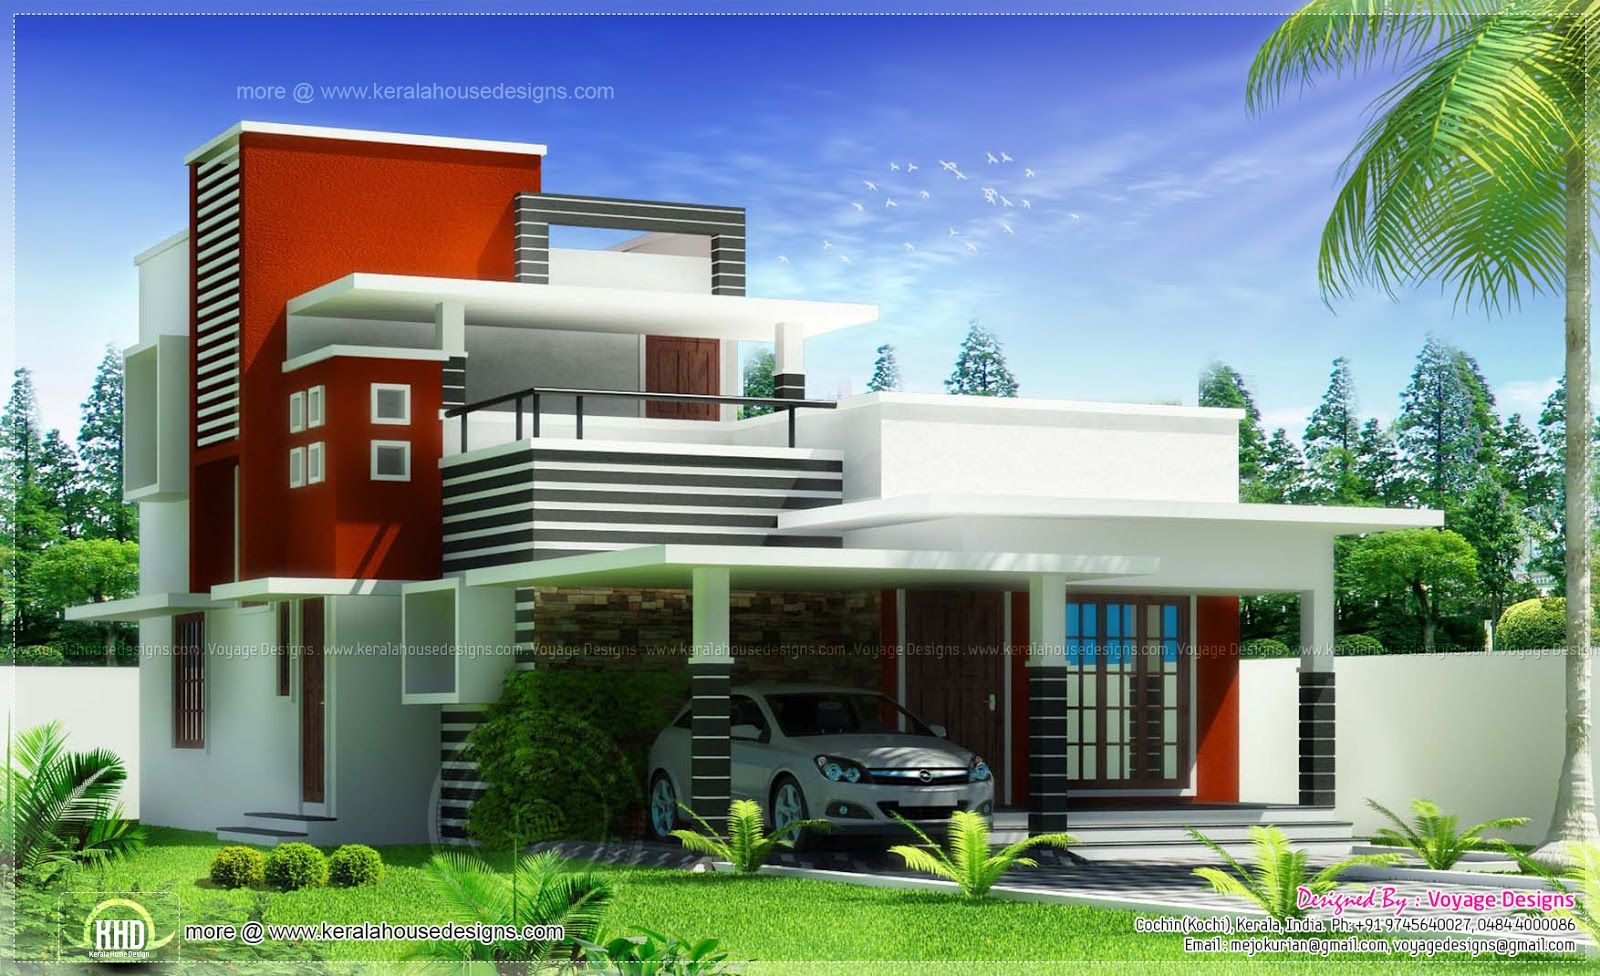 kerala house designs architecture pinterest kerala On derniere kerala house plans photos